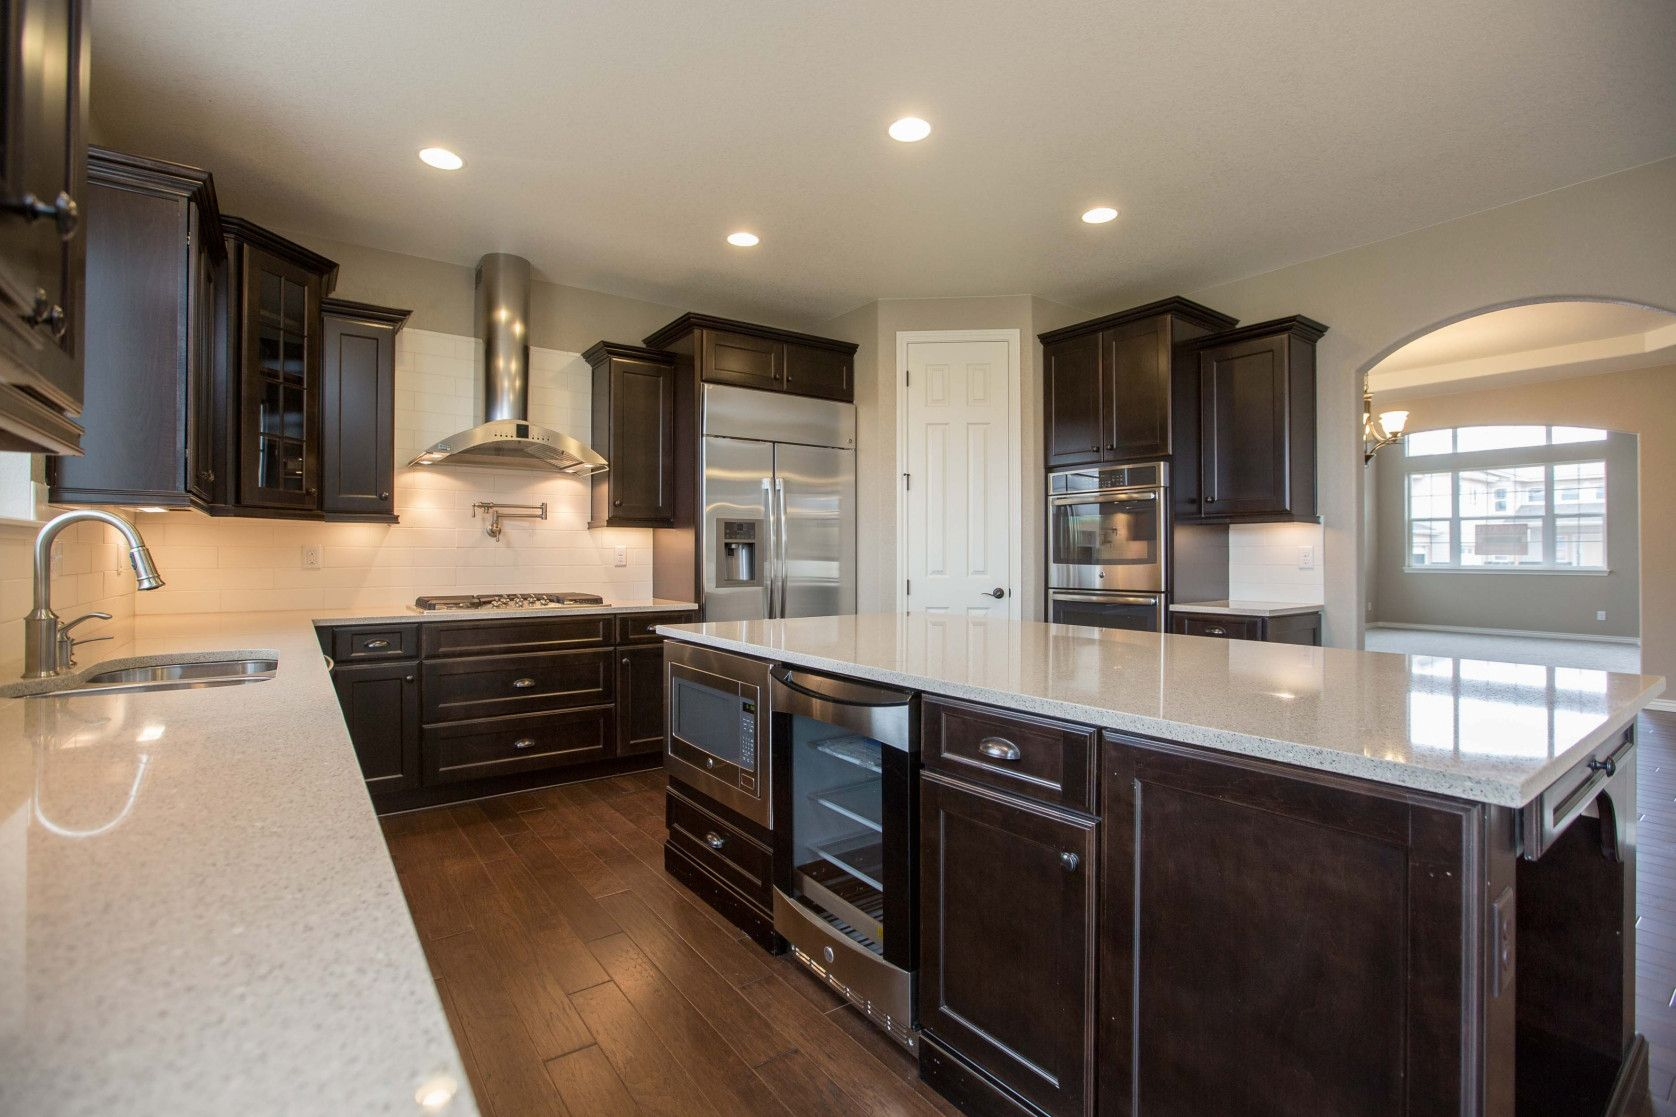 50 Dr Horton Kitchen Cabinets Kitchen Cabinet Inserts Ideas Check More At Http Www Planetgreenspot Com Countertops Diy Countertops Inexpensive Countertops